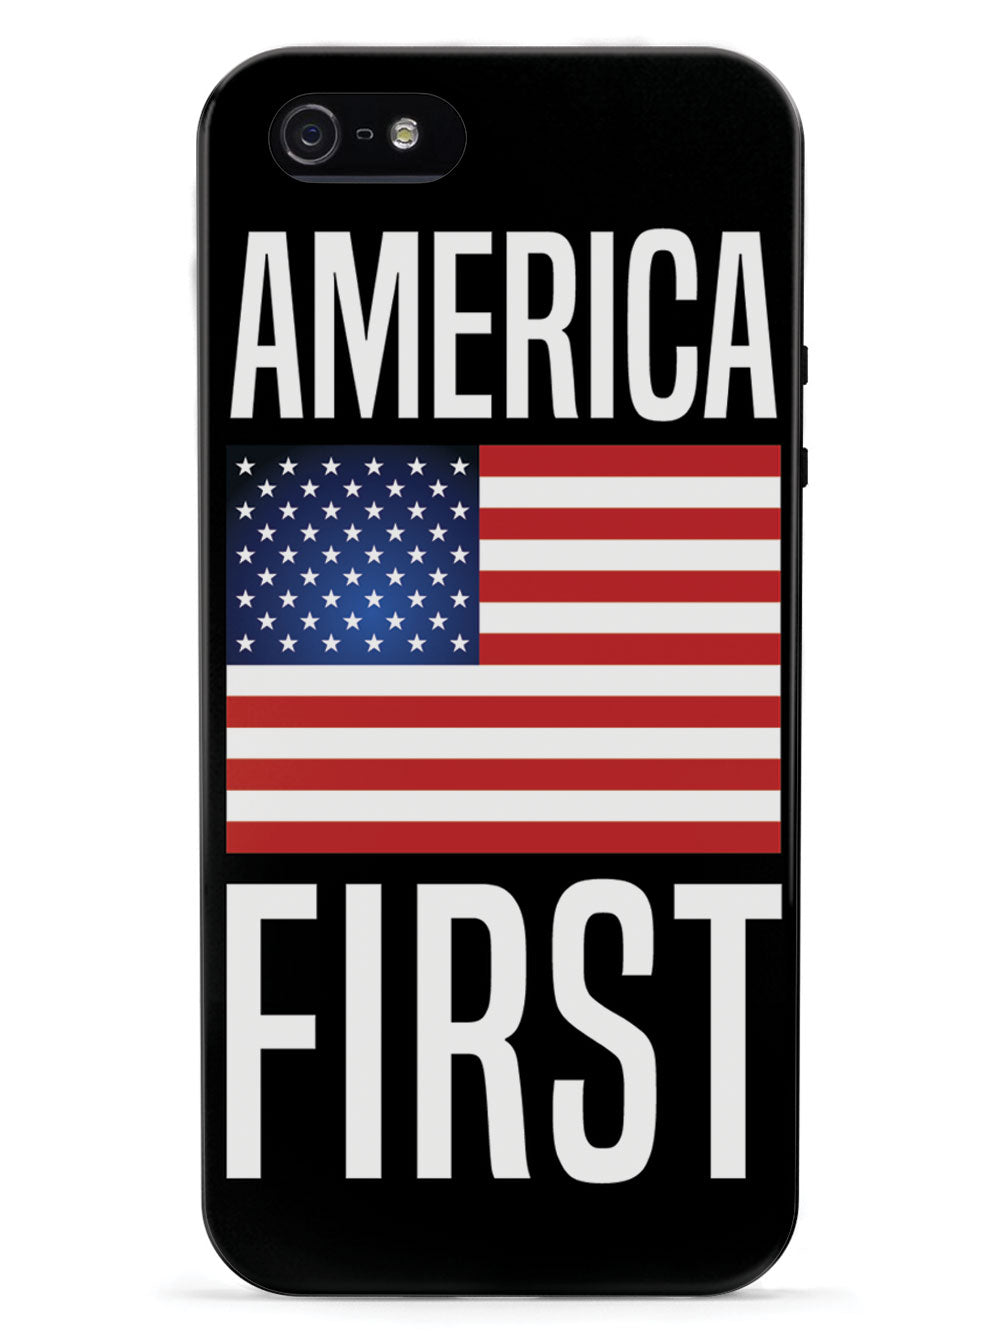 America First - Black Case